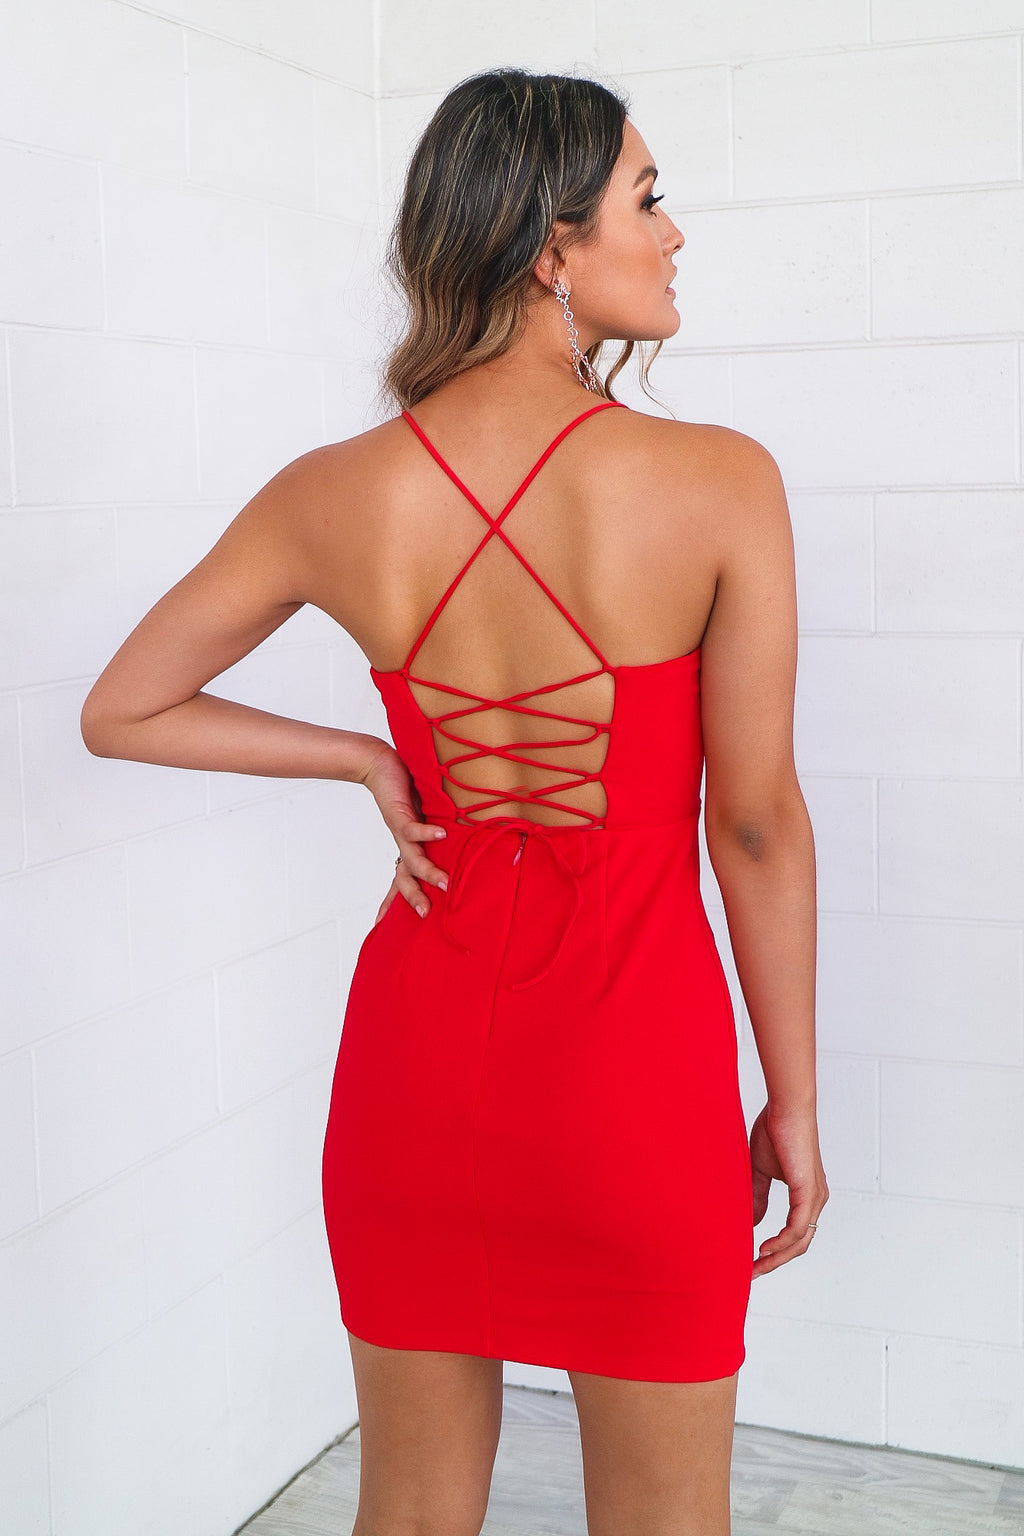 Selena Red Bodycon Dress - Runway Goddess